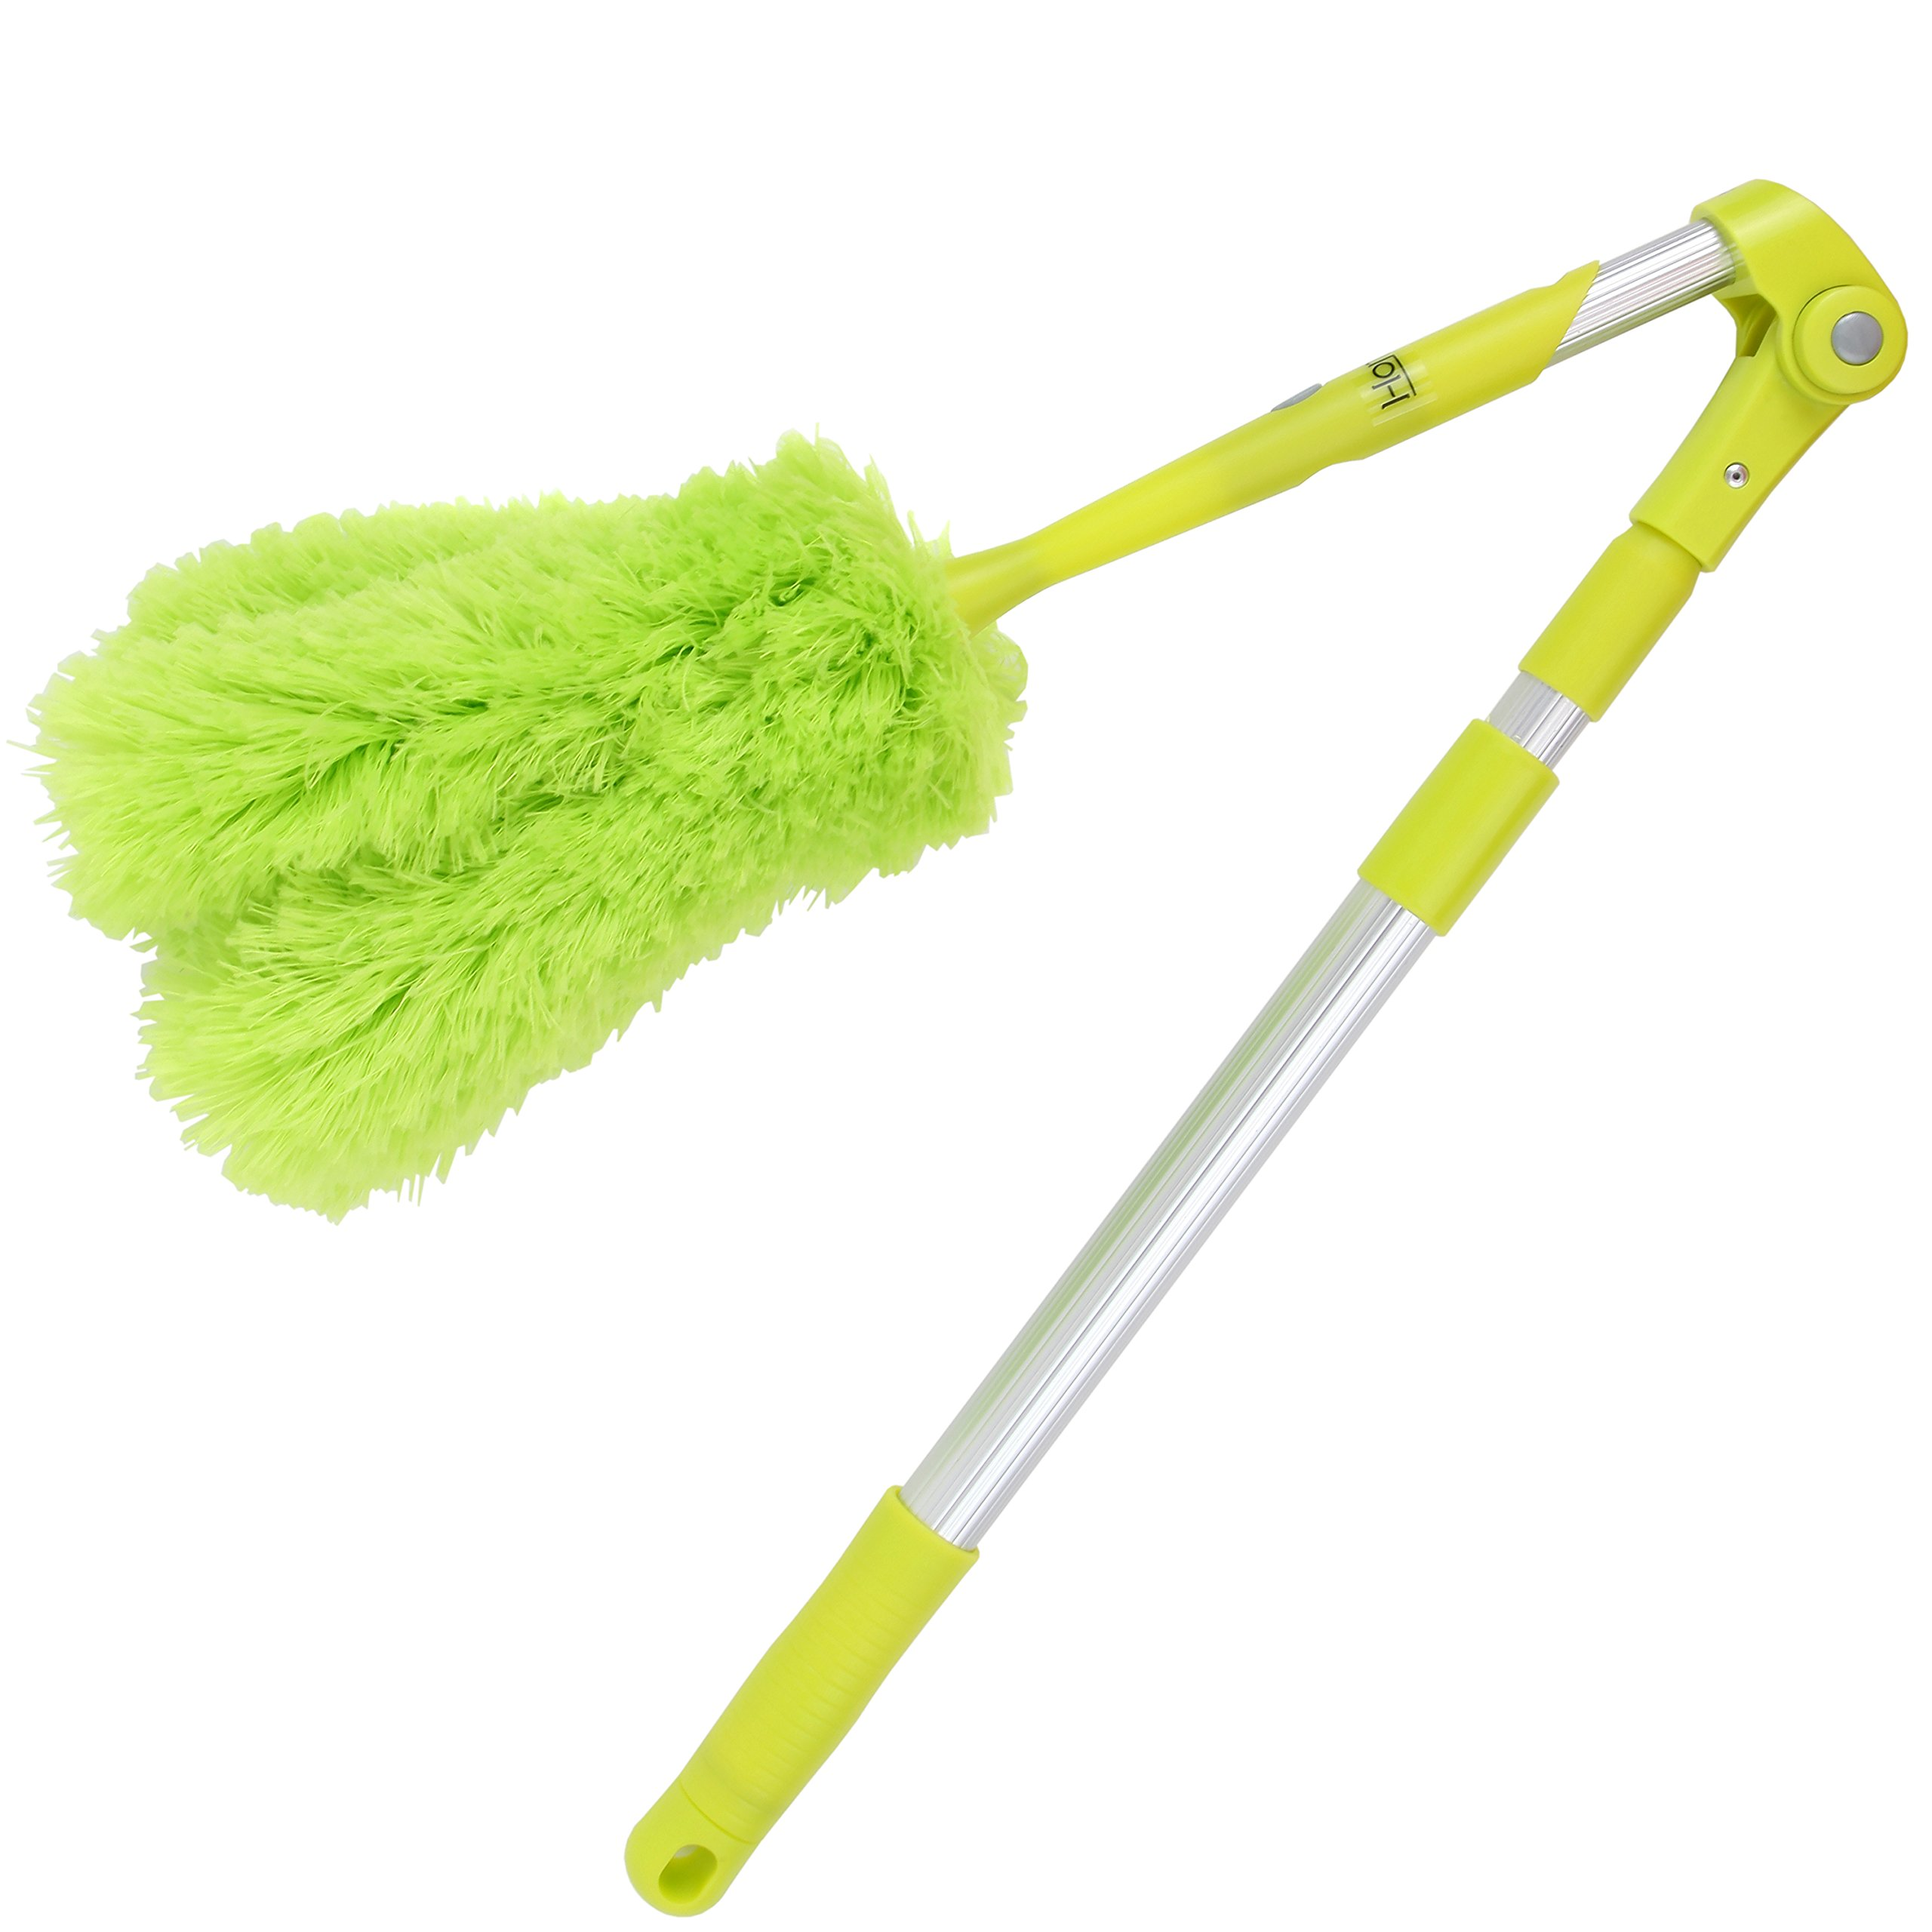 Lightweight Microfiber Duster With Extension Pole, Washable, Bendable, Hypoallergenic Lint Free Cleaning, With Long Extendable & Retractable Telescopic Pole, For Ceiling, Fan, Bulbs & Wall Dusting